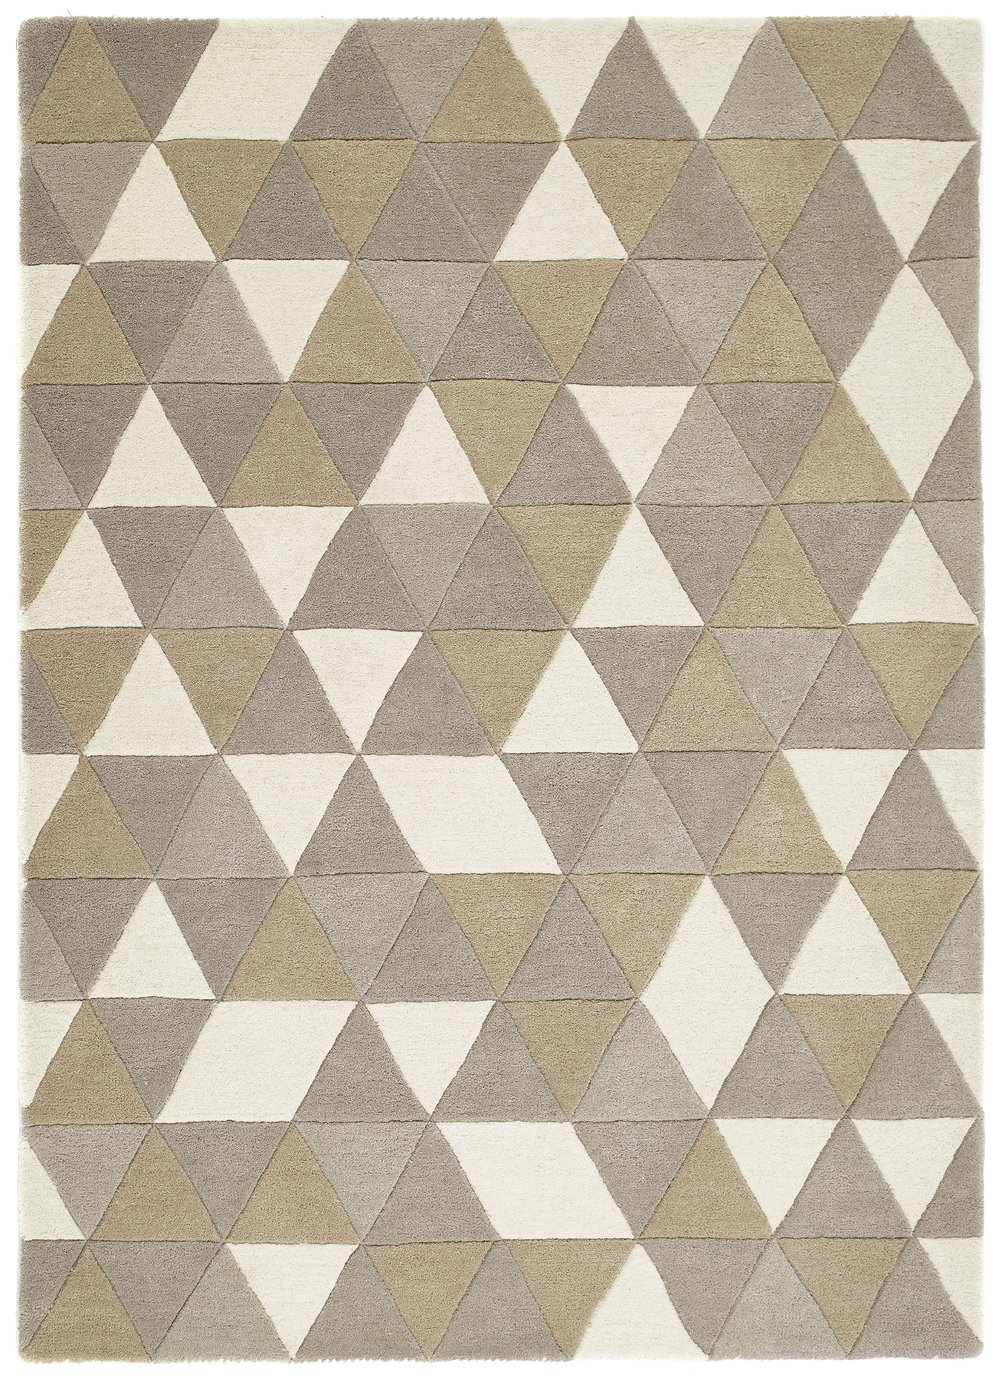 Origins Honeycomb Rug